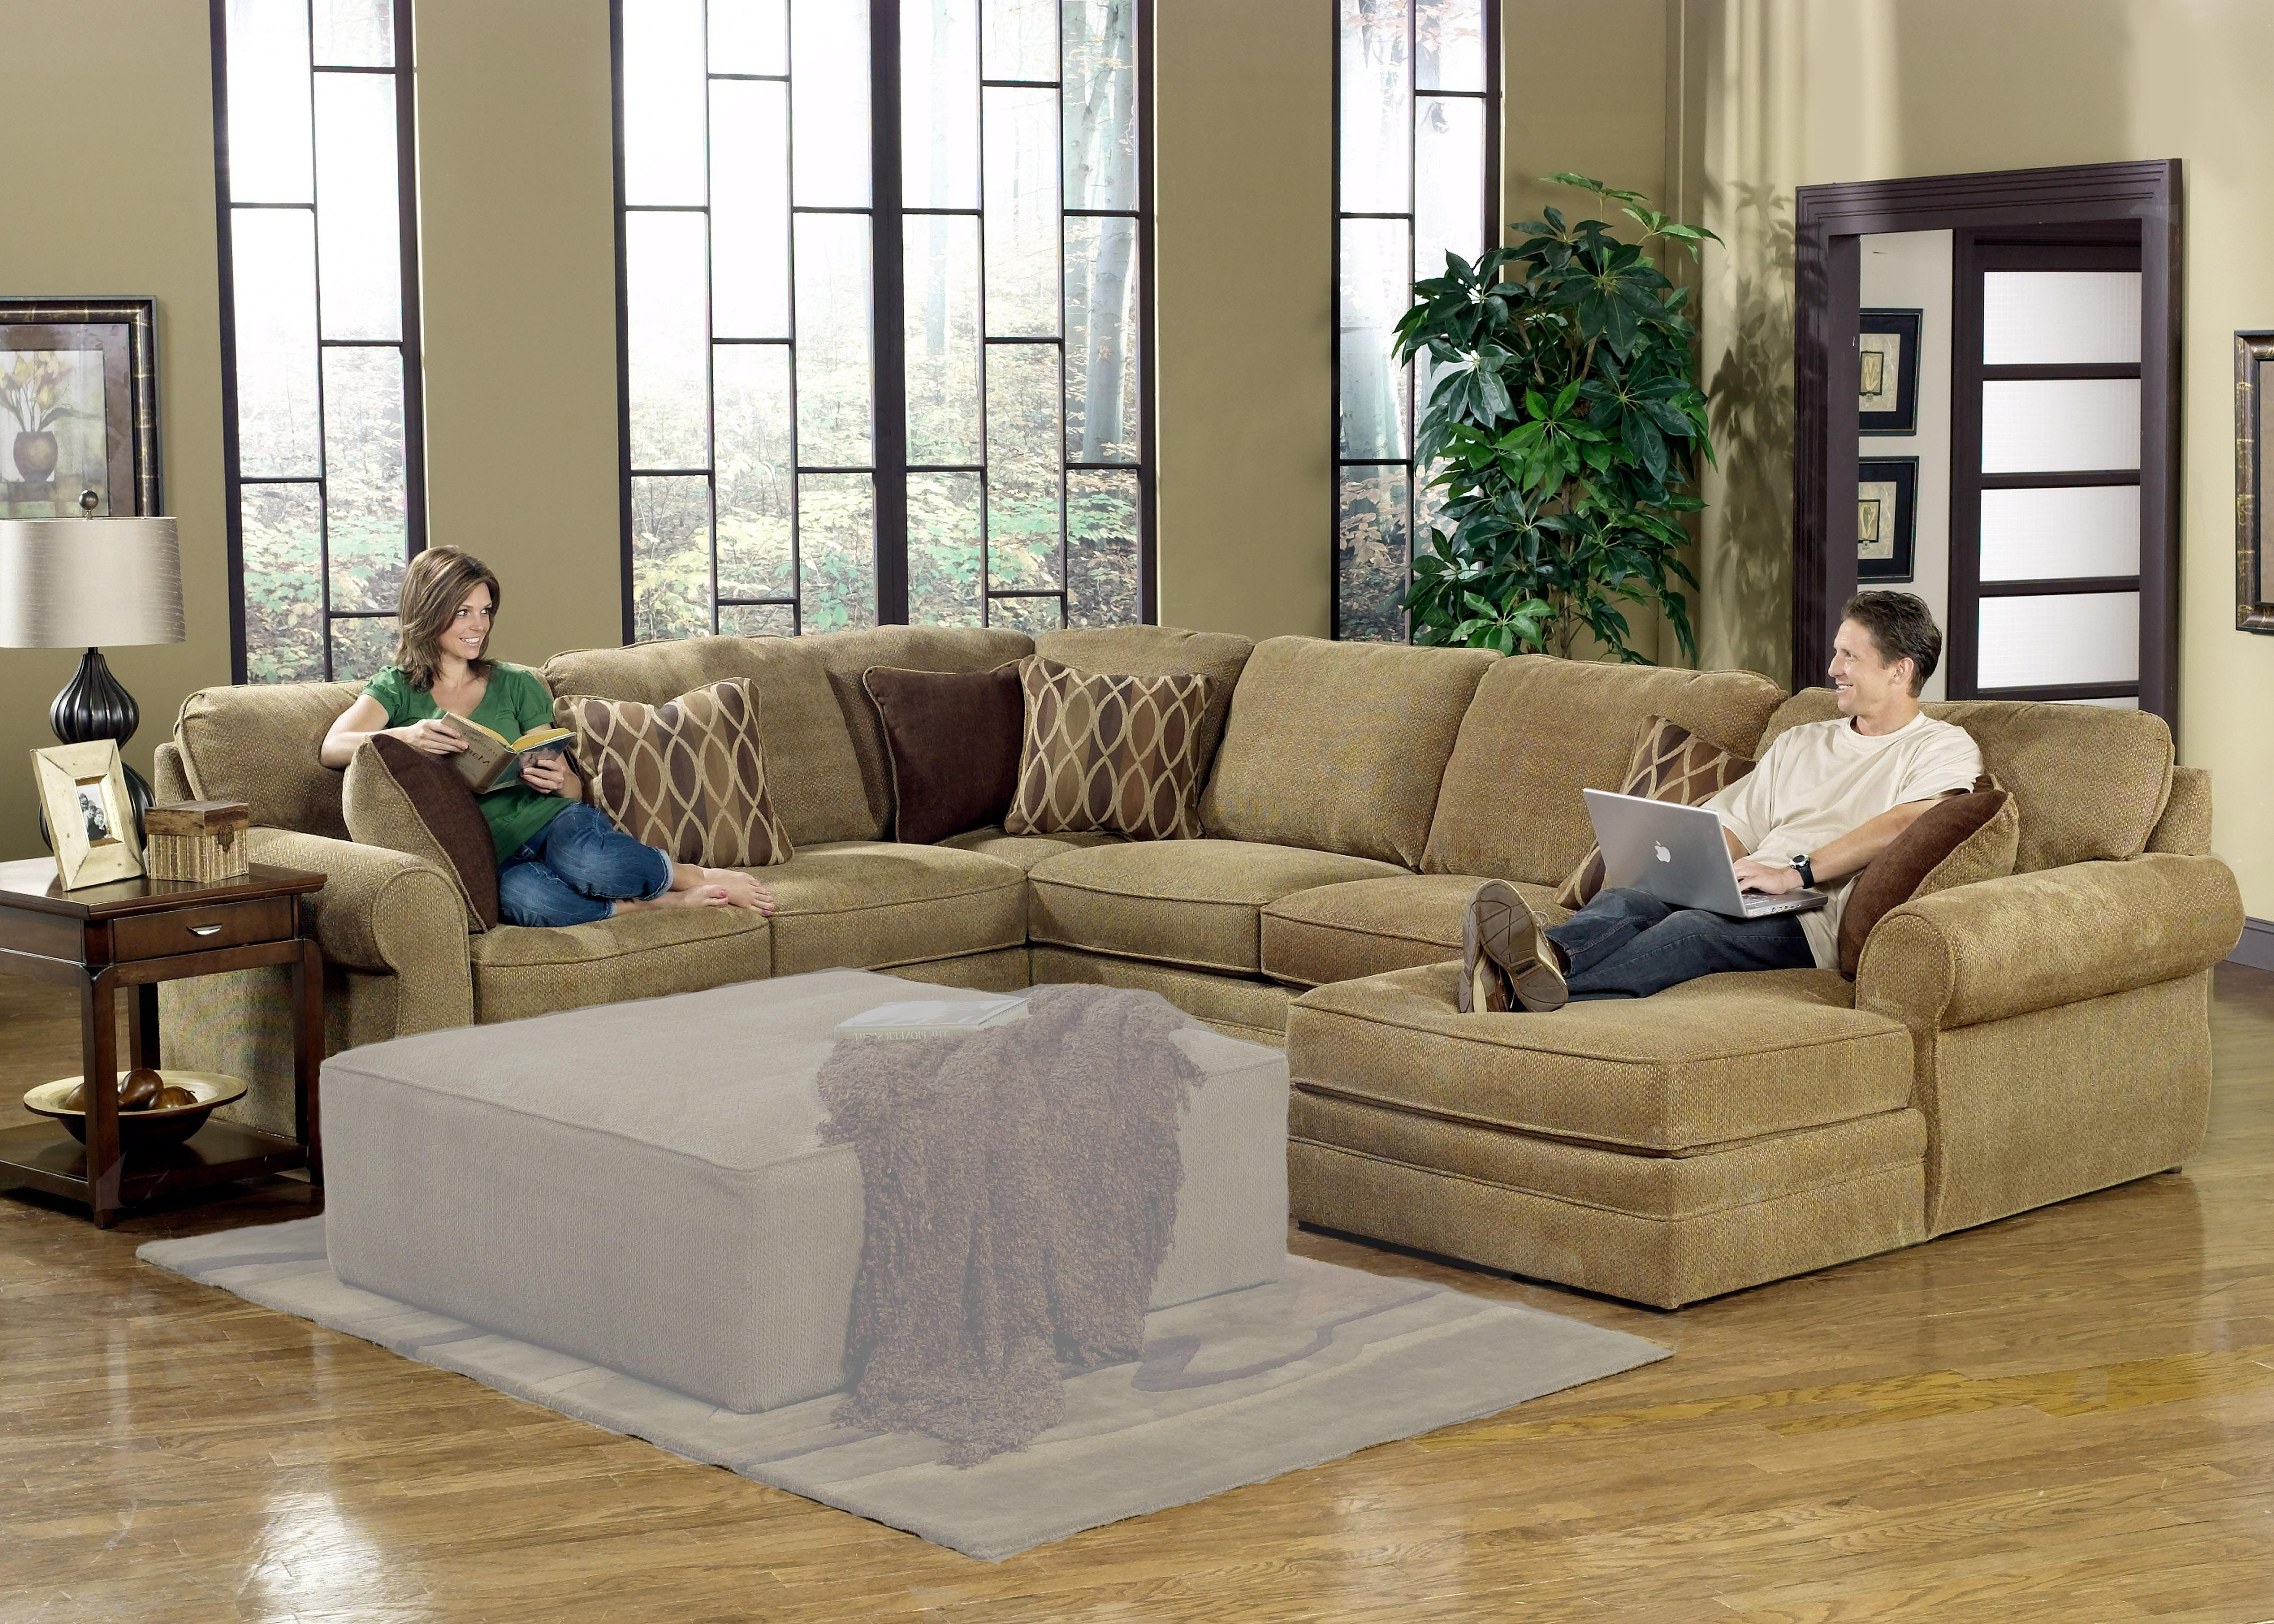 Sectional Sofa Design: Adorable Large U Shaped Sectional Sofa Best Inside Well Known Large Comfortable Sectional Sofas (View 13 of 20)